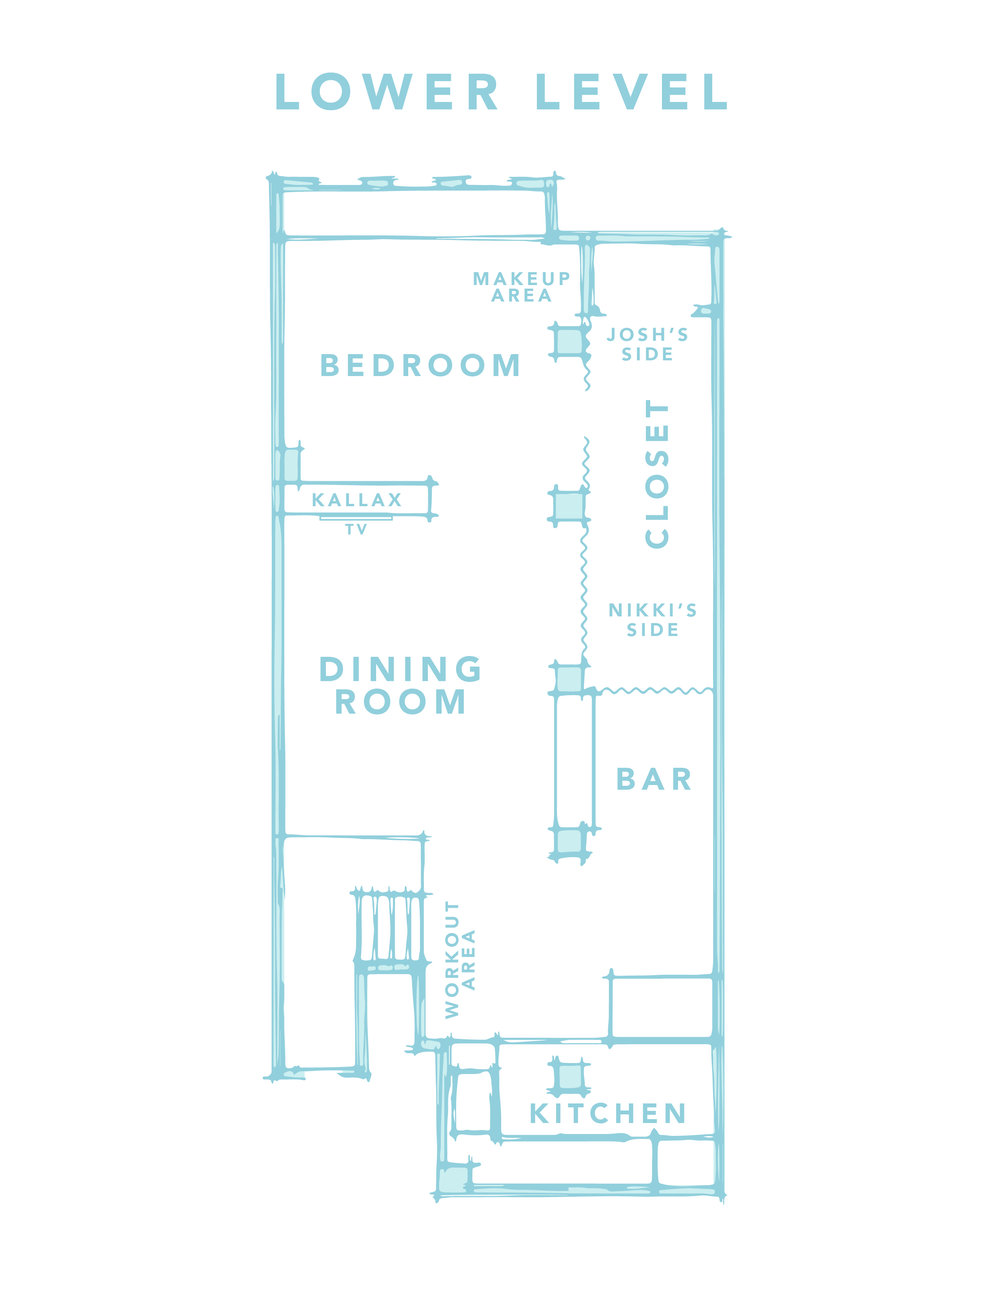 HOUSE TOUR FLOOR PLANS.jpg